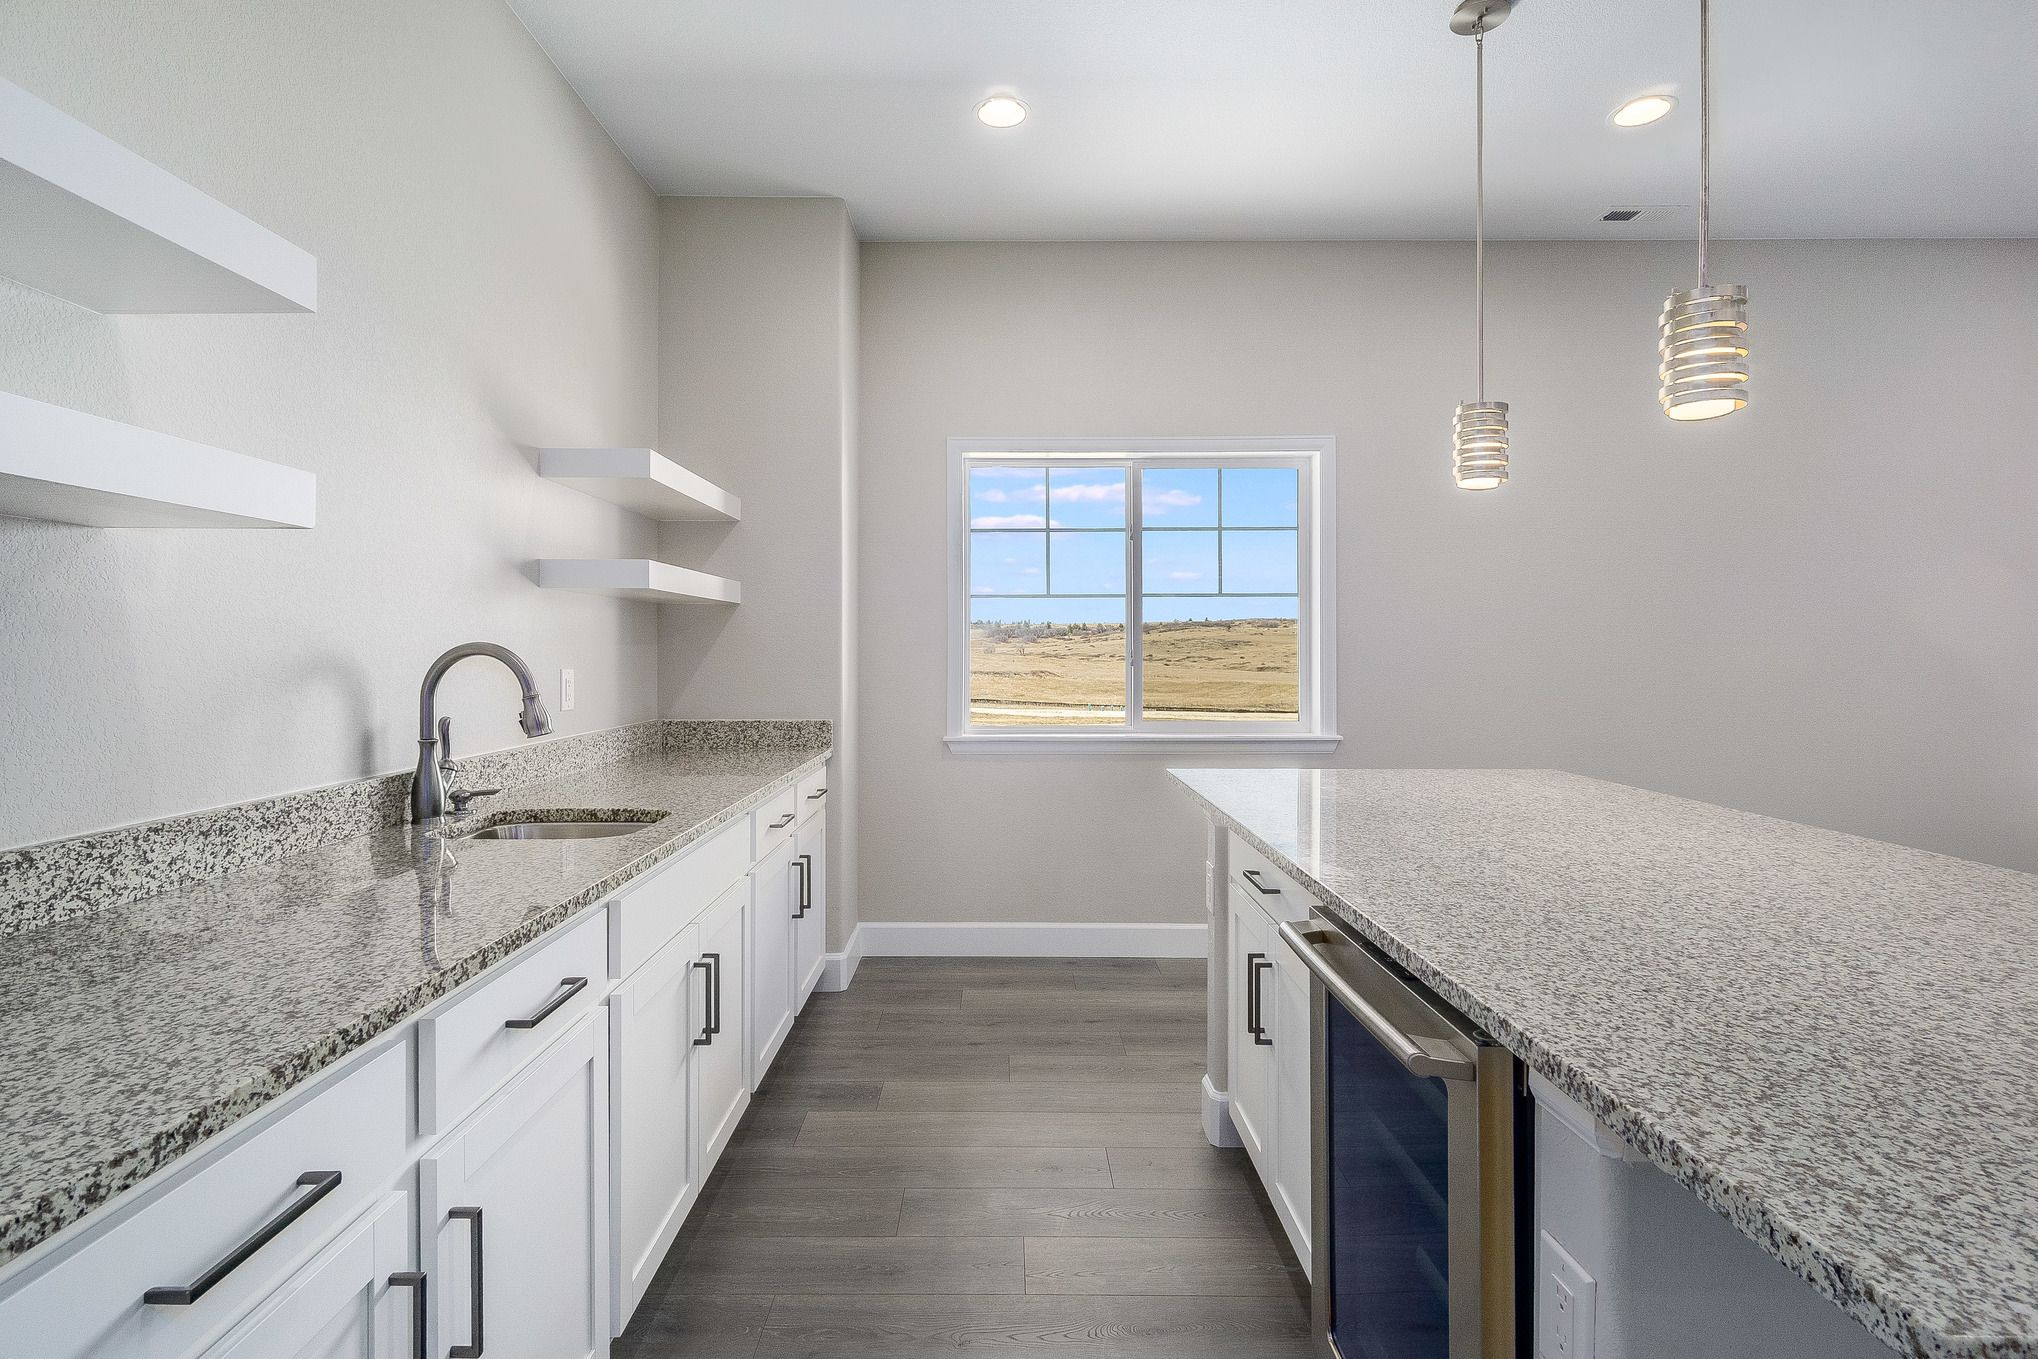 Kitchen featured in the Tenley By Lokal Homes in Denver, CO